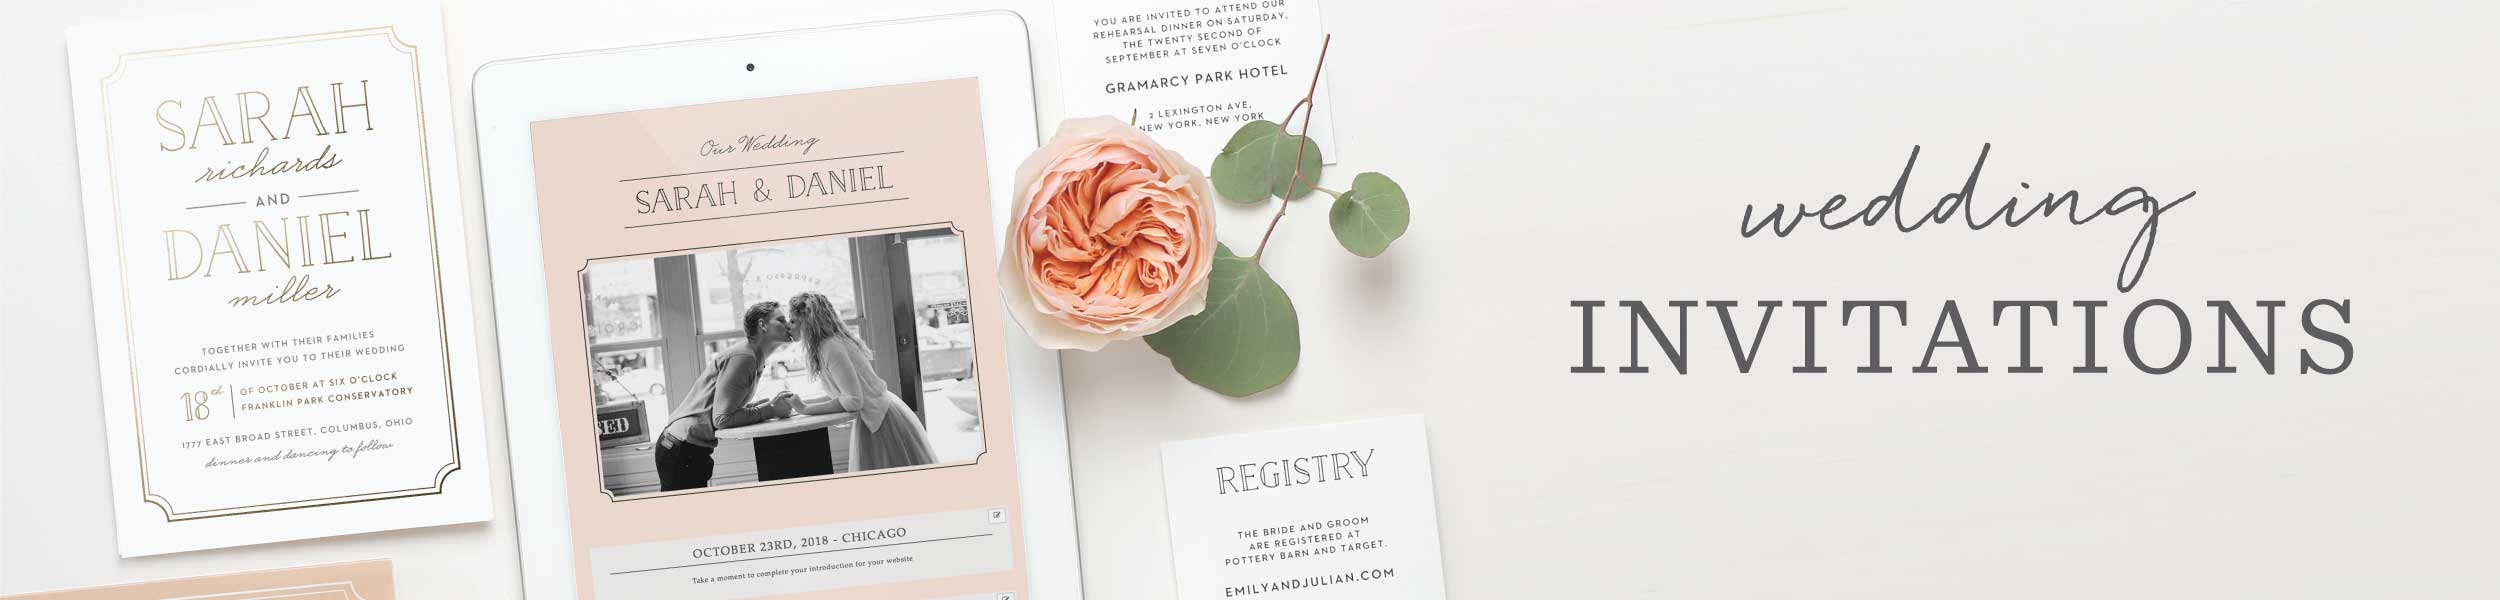 Autumn Wedding Invitations - Match Your Color & Style Free!